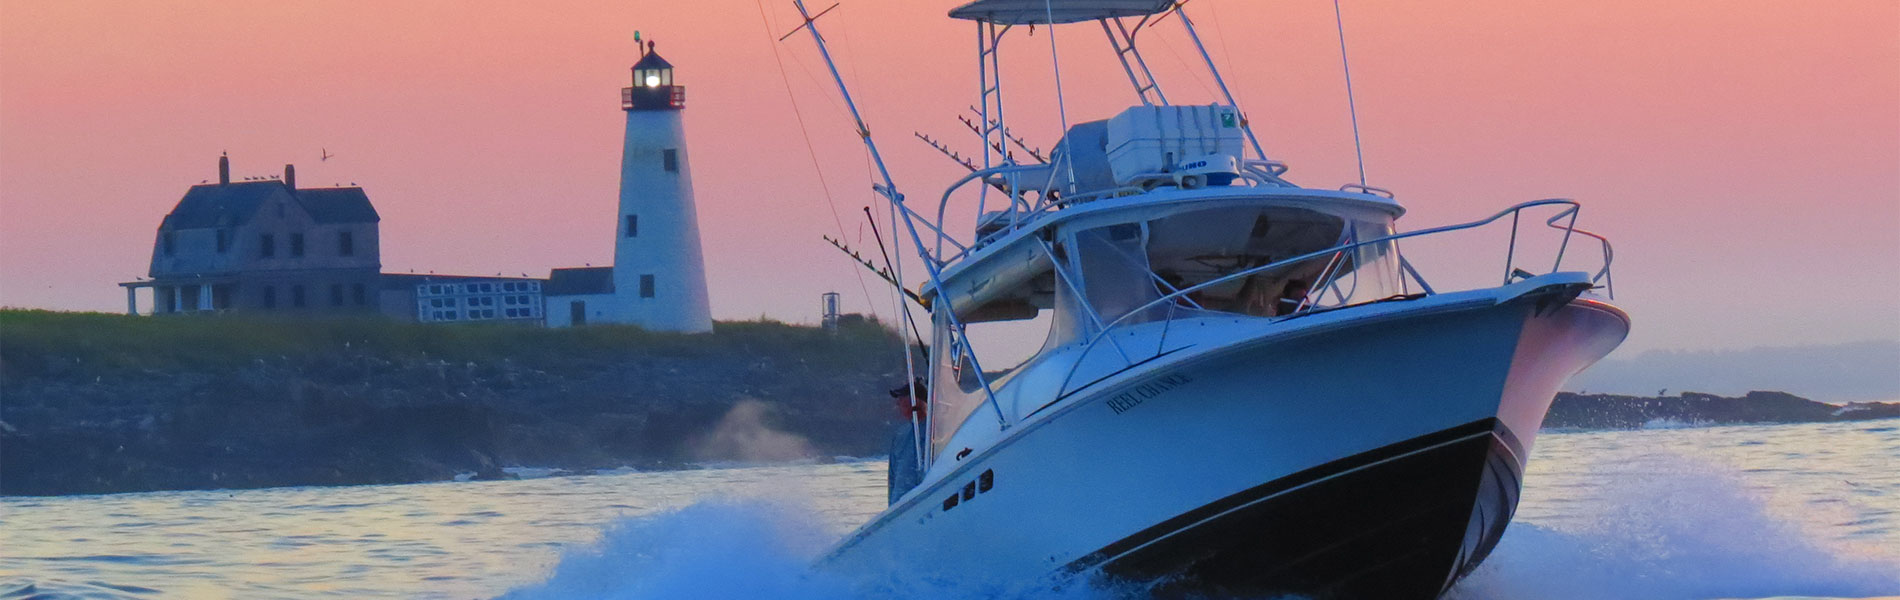 F/V Reel Chance heading to the grounds. Photo by Jim Hinkley